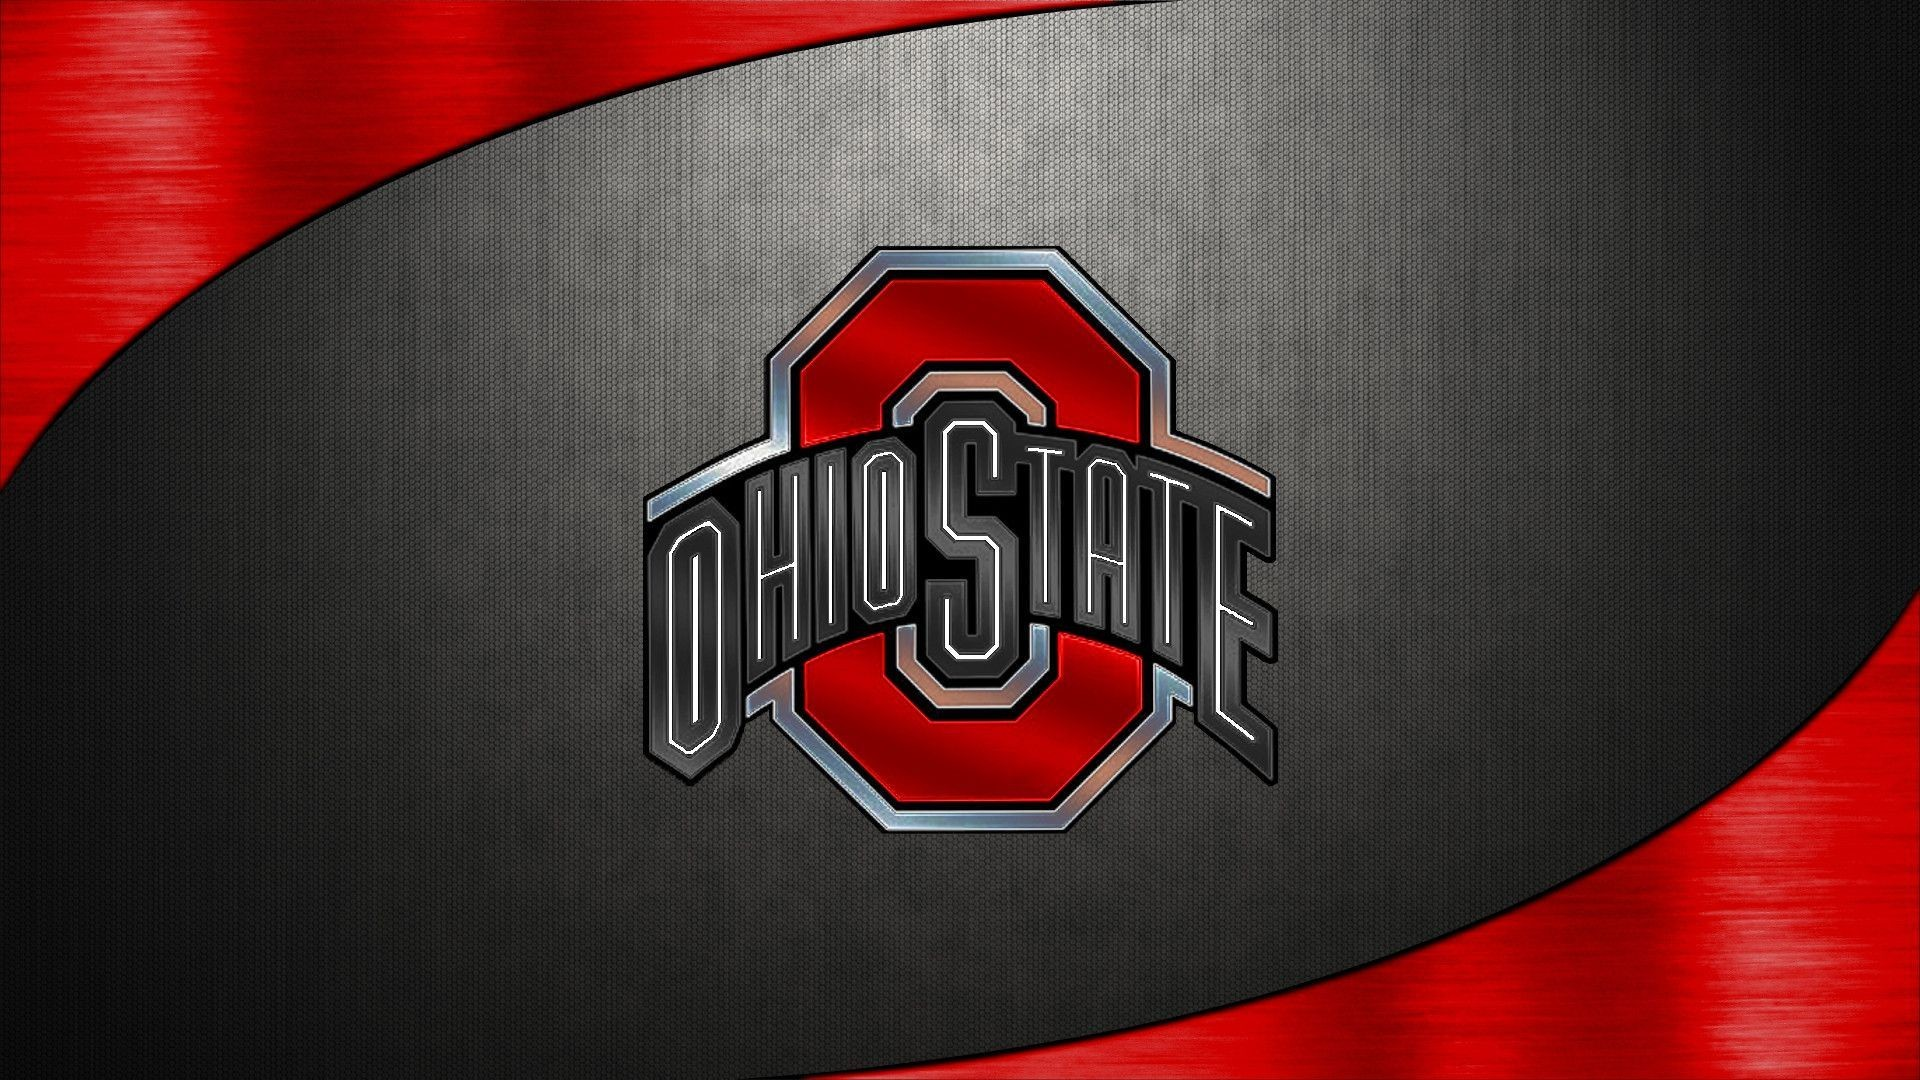 1920x1080 OSU Desktop Wallpaper Ohio State Football Wallpaper | HD Wallpapers |  Pinterest | Buckeyes, Hd wallpaper and Wallpaper